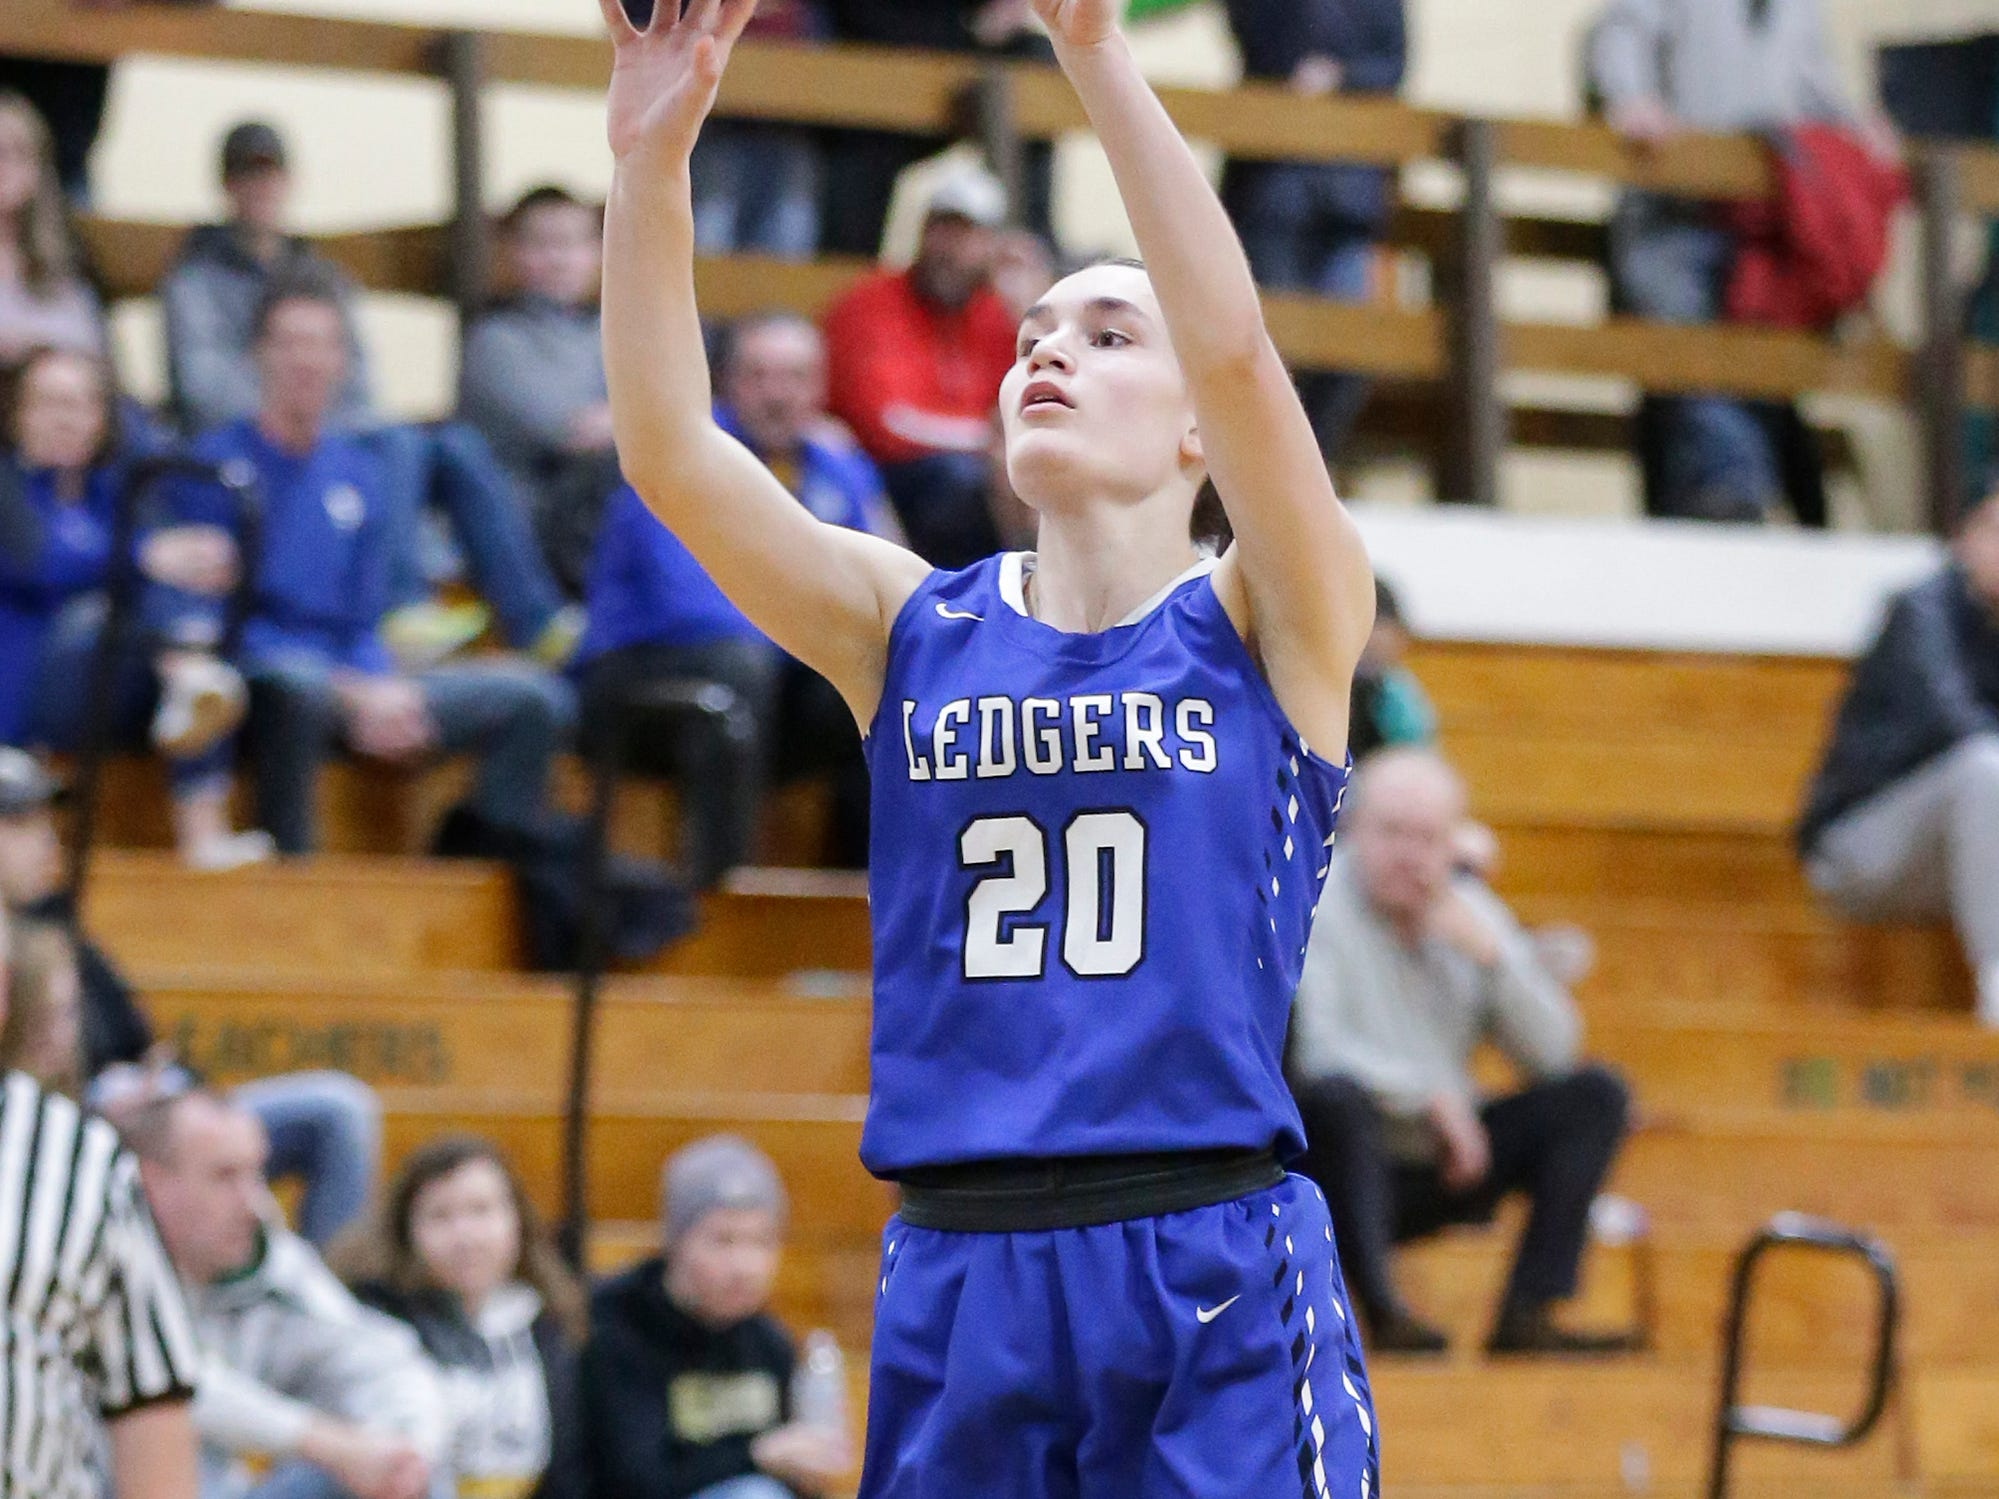 St. Mary's Springs Academy girls basketball's Jenna Gilgenbach makes this three pointer against Laconia High School Tuesday, January 15, 2019 during their game in Rosendale. Laconia won the game 57-45. Doug Raflik/USA TODAY NETWORK-Wisconsin